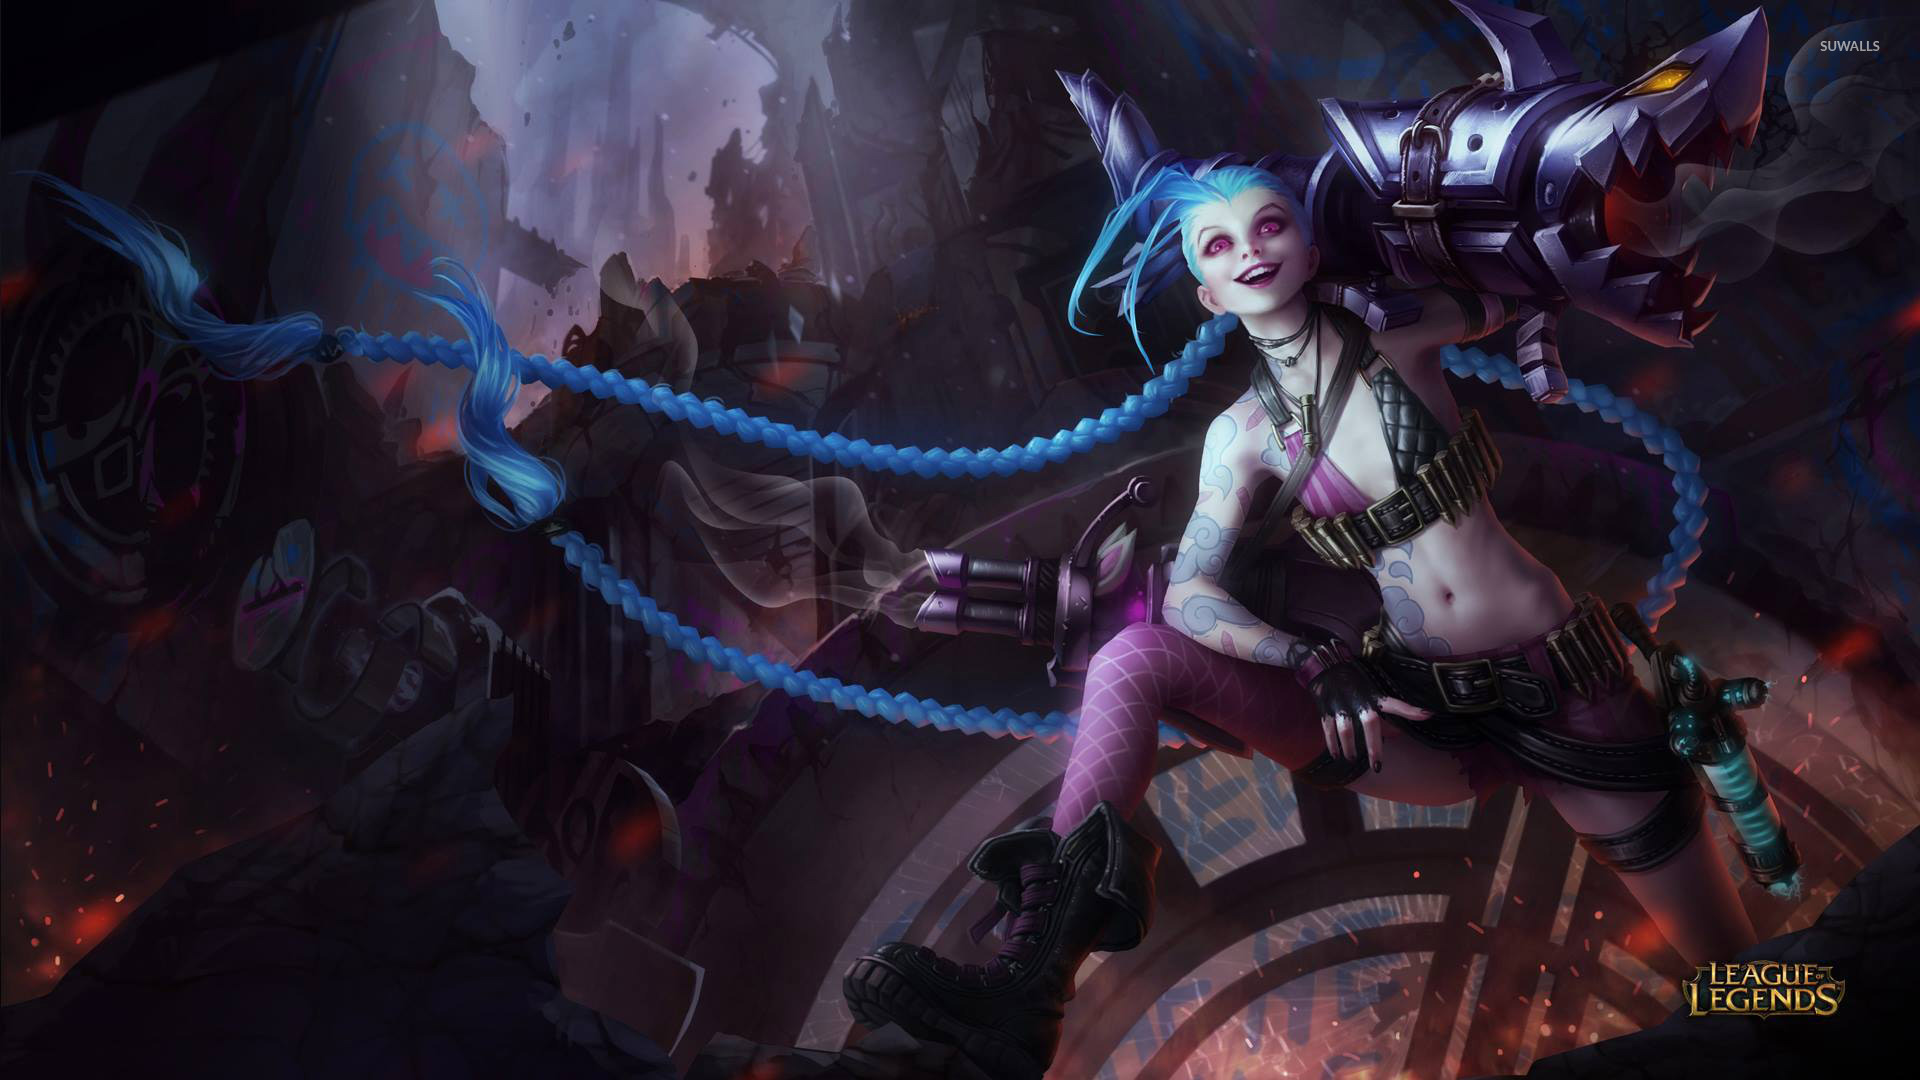 jinx-league-of-legends-26093-1920x1080_1.jpg